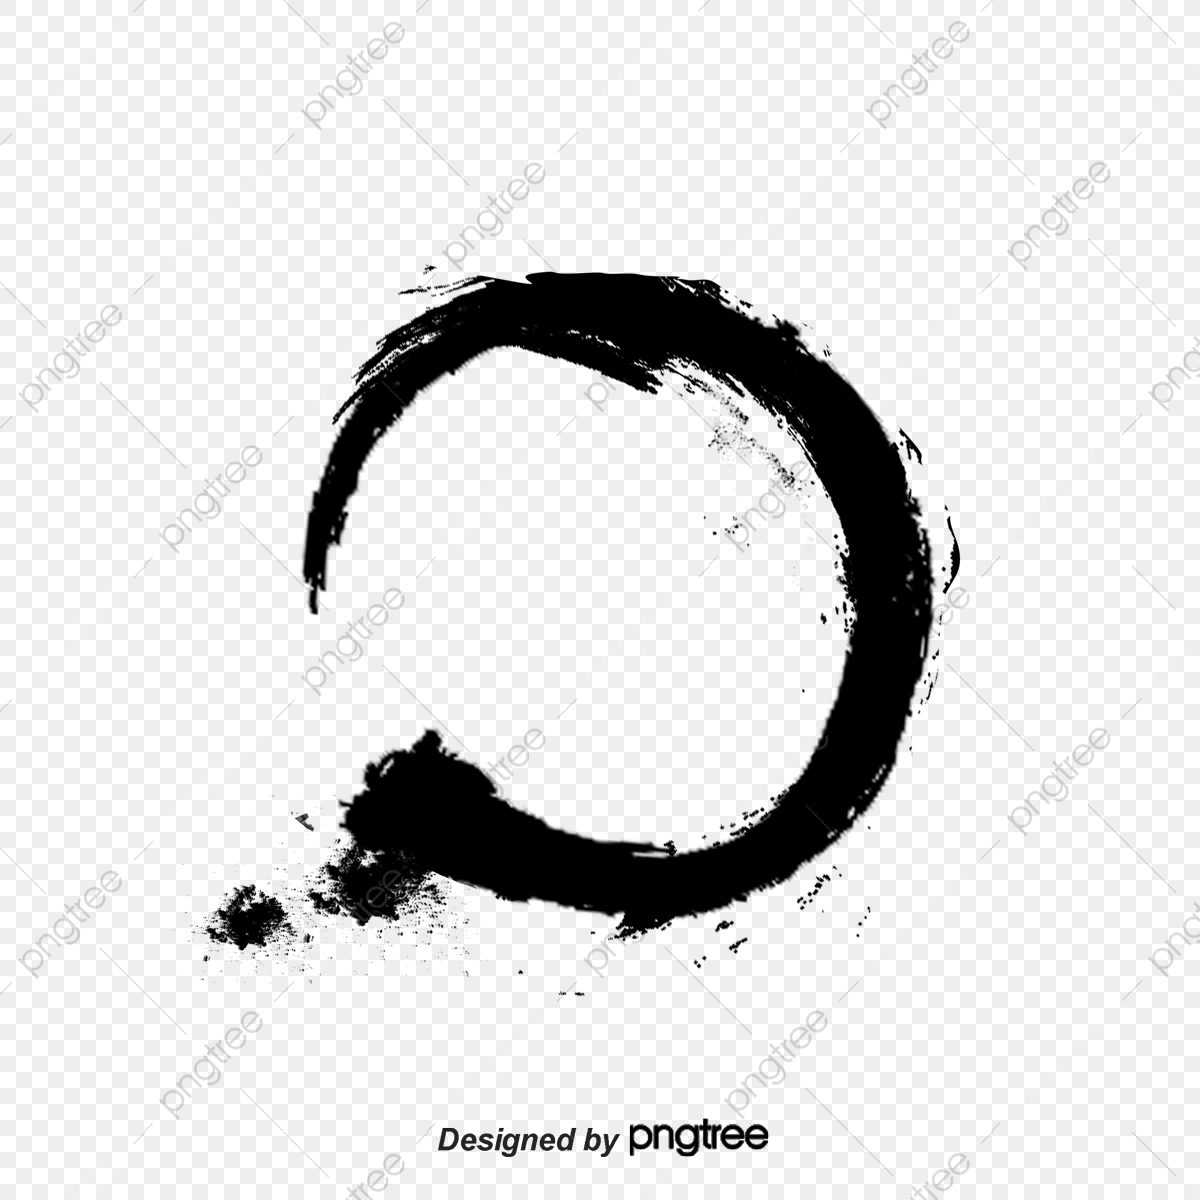 Black Ink Round, Ink Marks, Brush, Chinese Style PNG